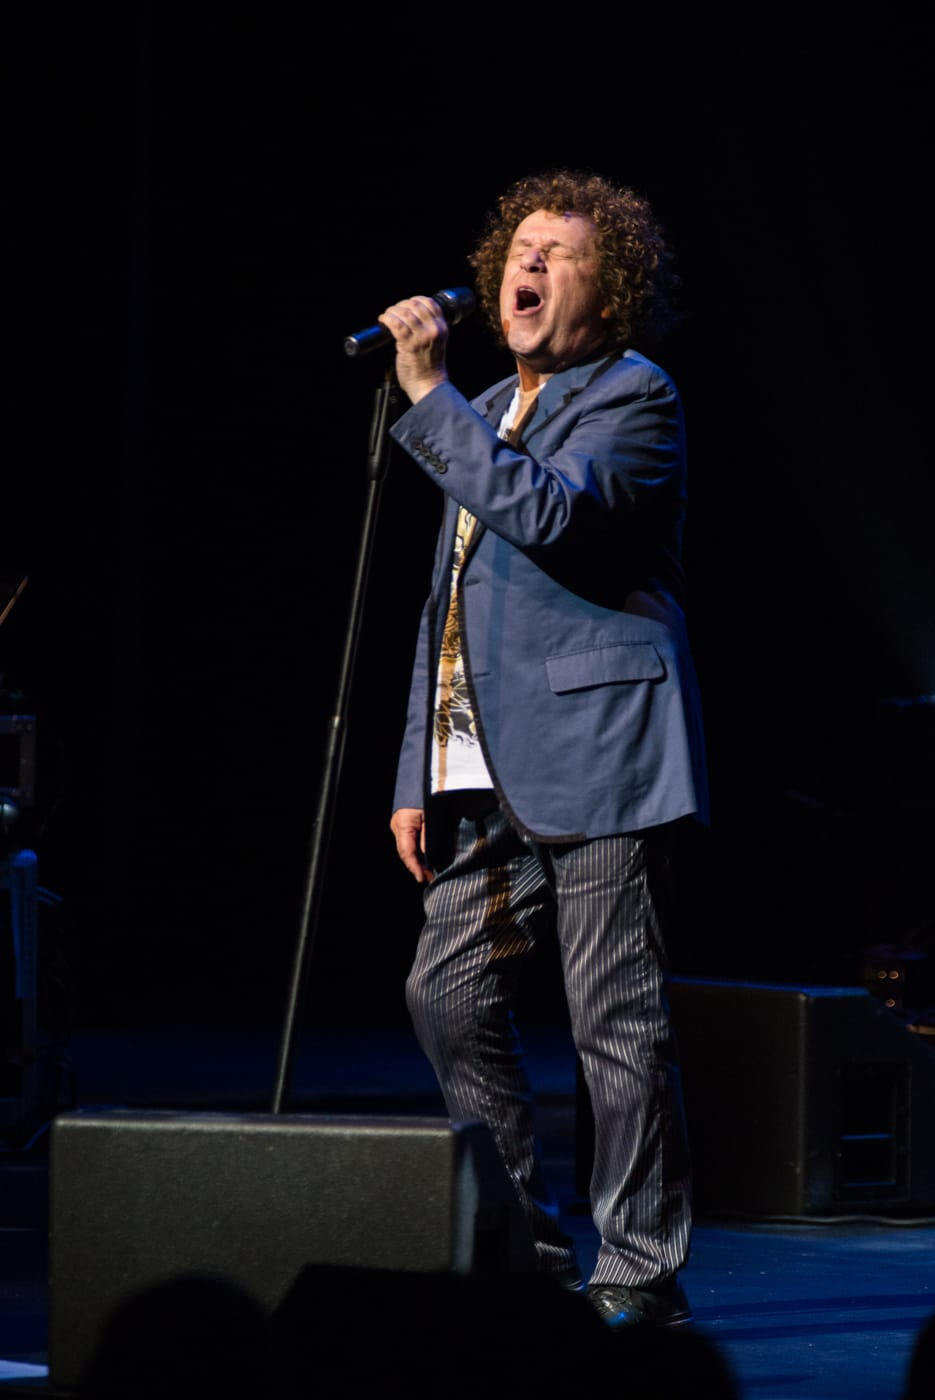 Leo Sayer at Bord Gais Energy Theatre by Sean Smyth (16-10-15) (34 of 129)